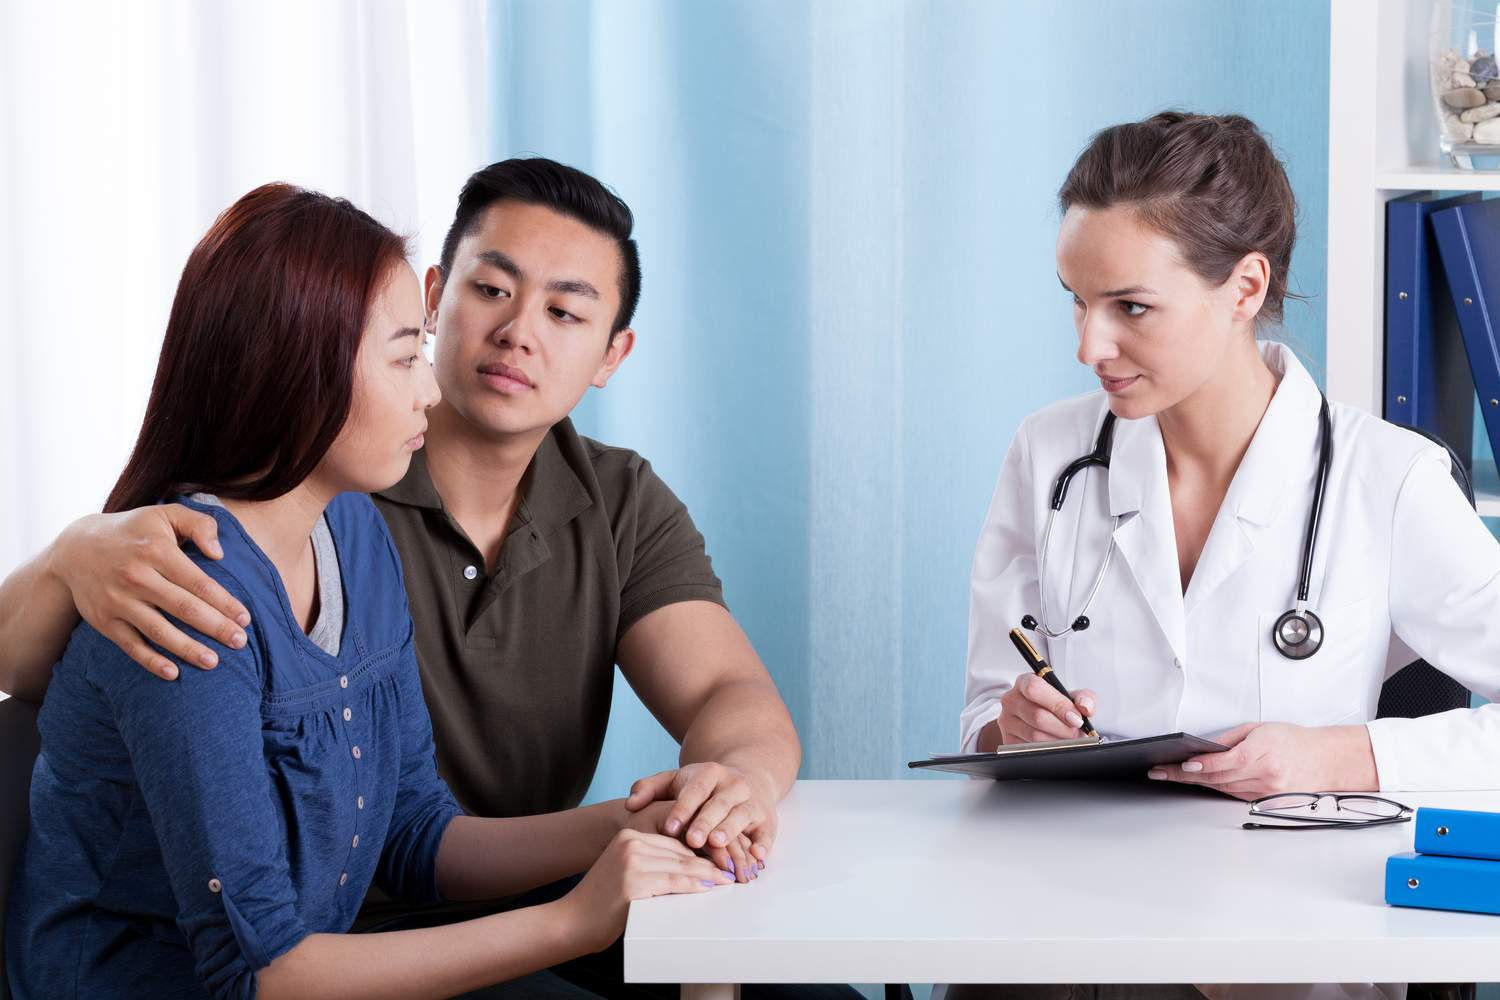 couple consulting doctor after miscarriage